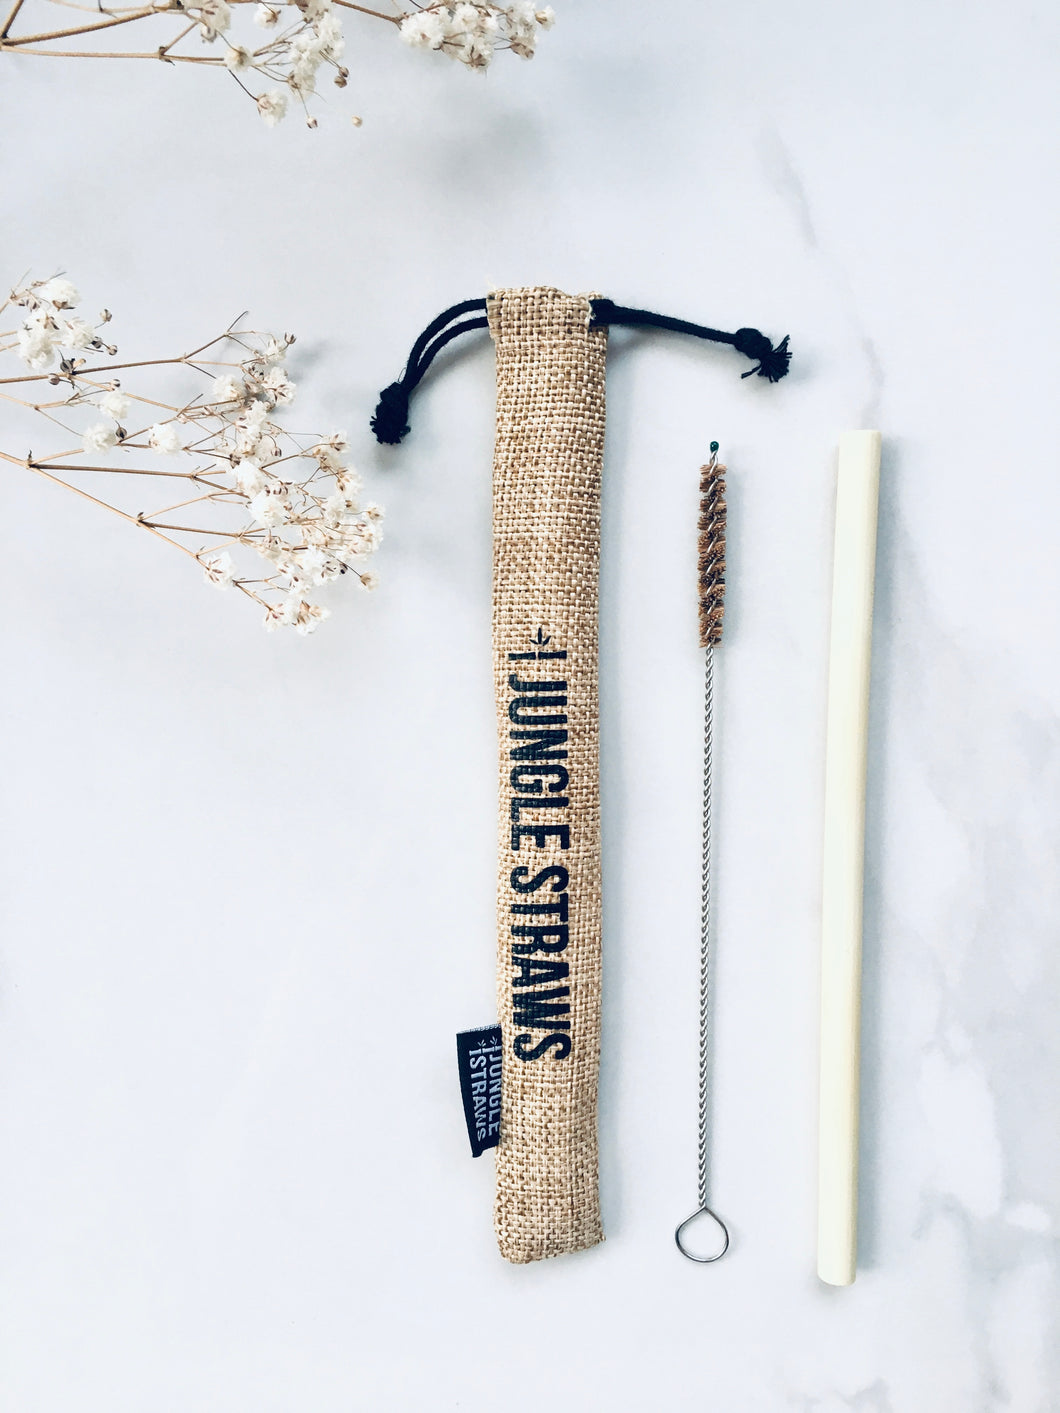 Bamboo Straw, Straw Cleaning Brush and Natural Jute Bag